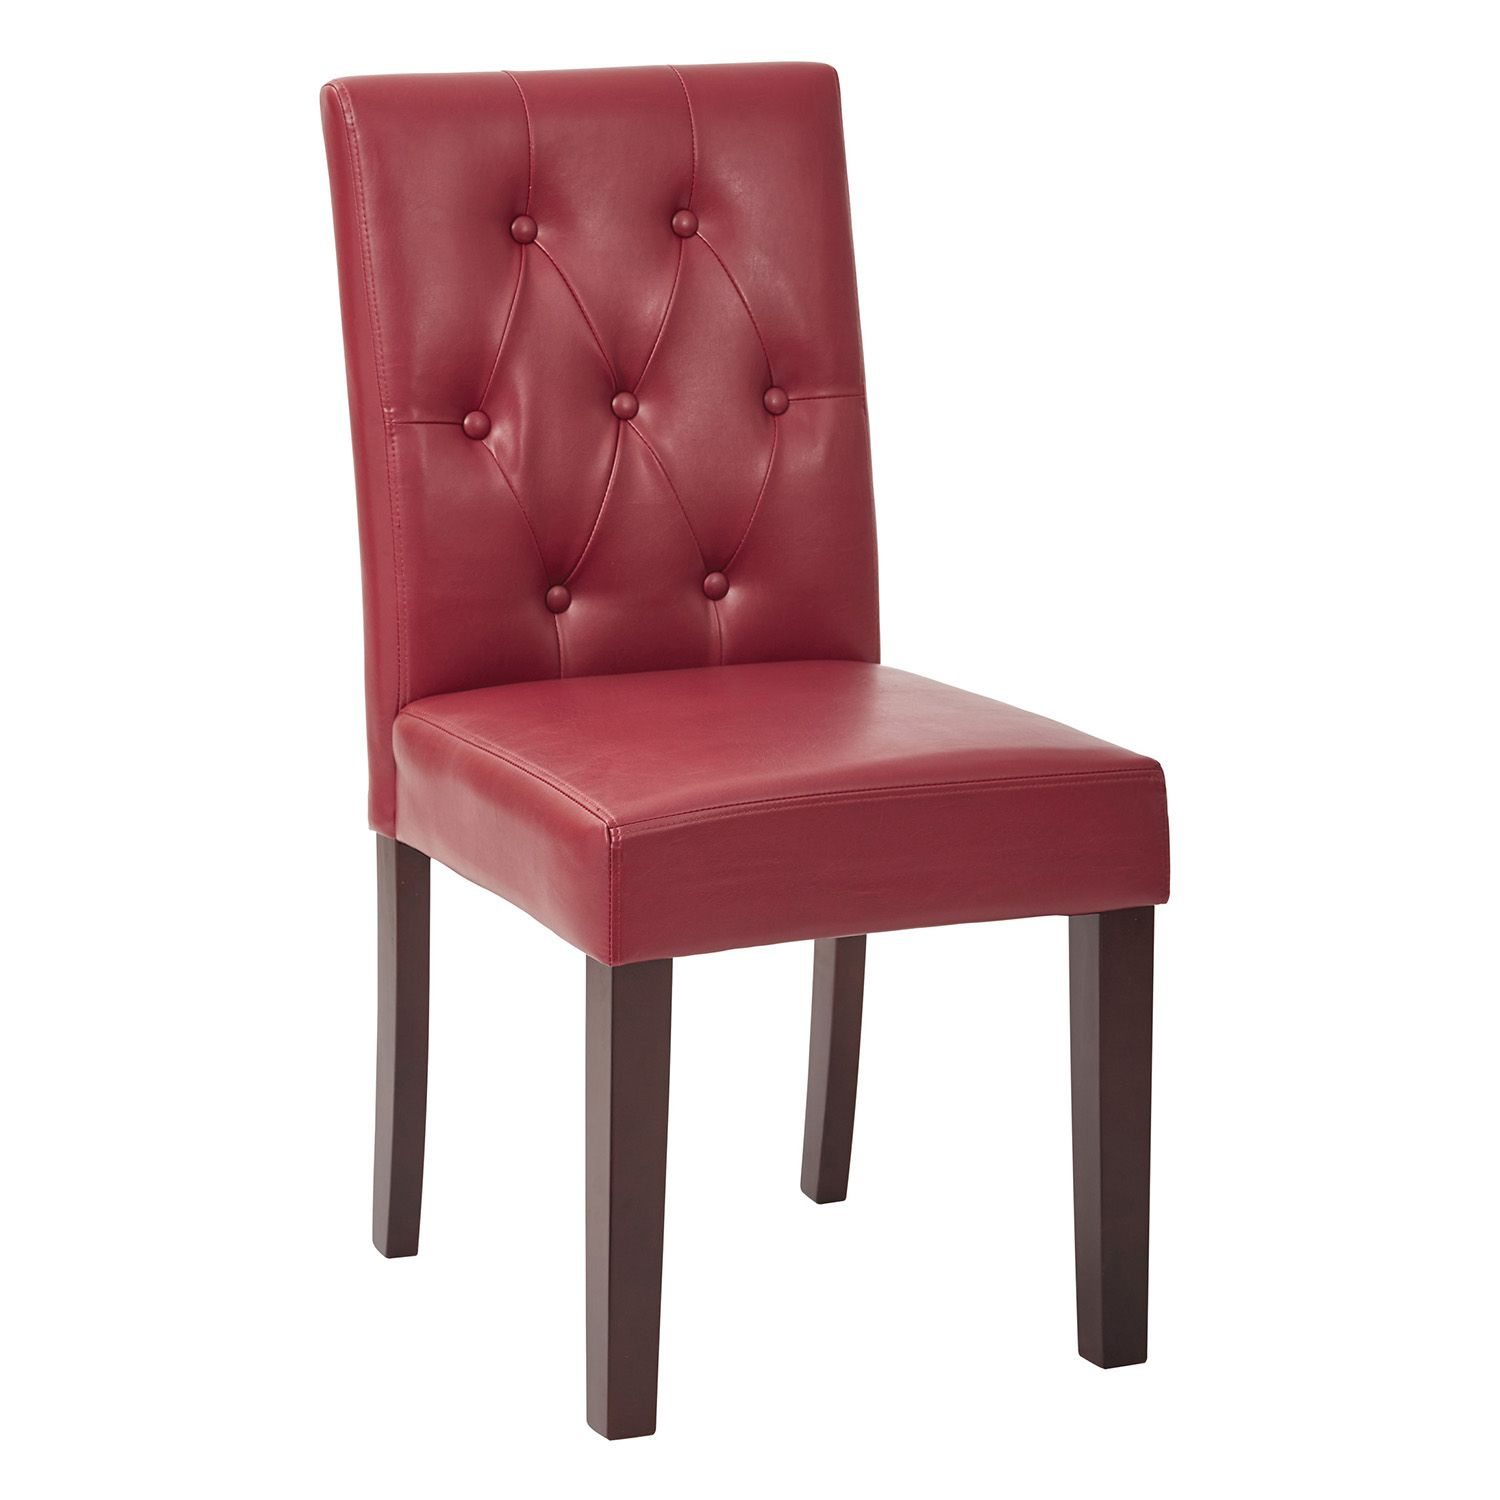 OSP Designs Button Tufted Dining Chair